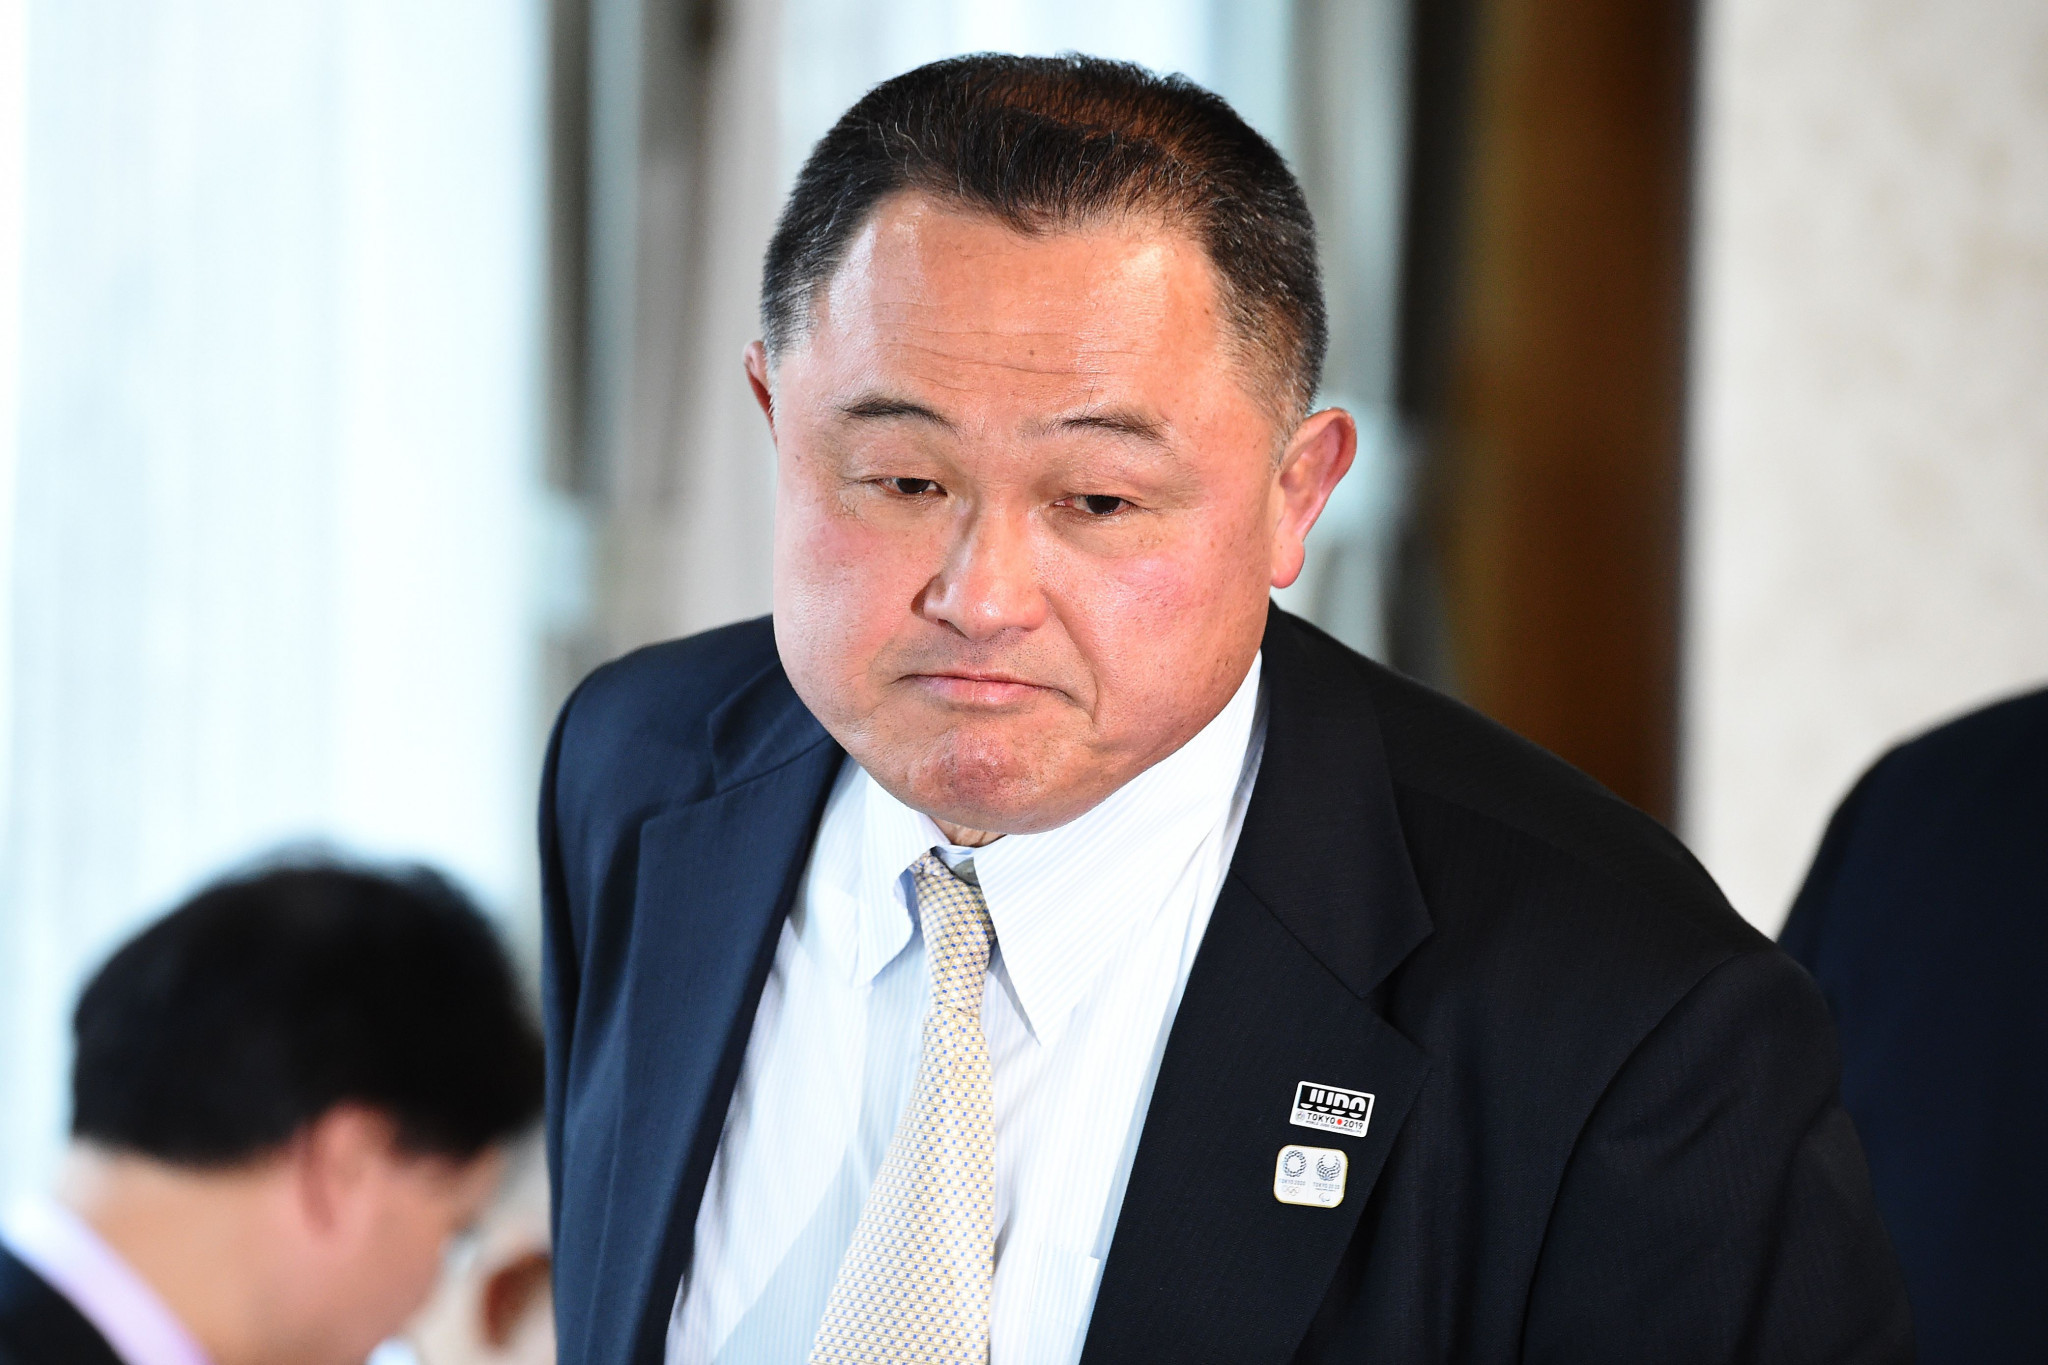 Yamashita set for election as Japanese Olympic Committee President to replace Takeda